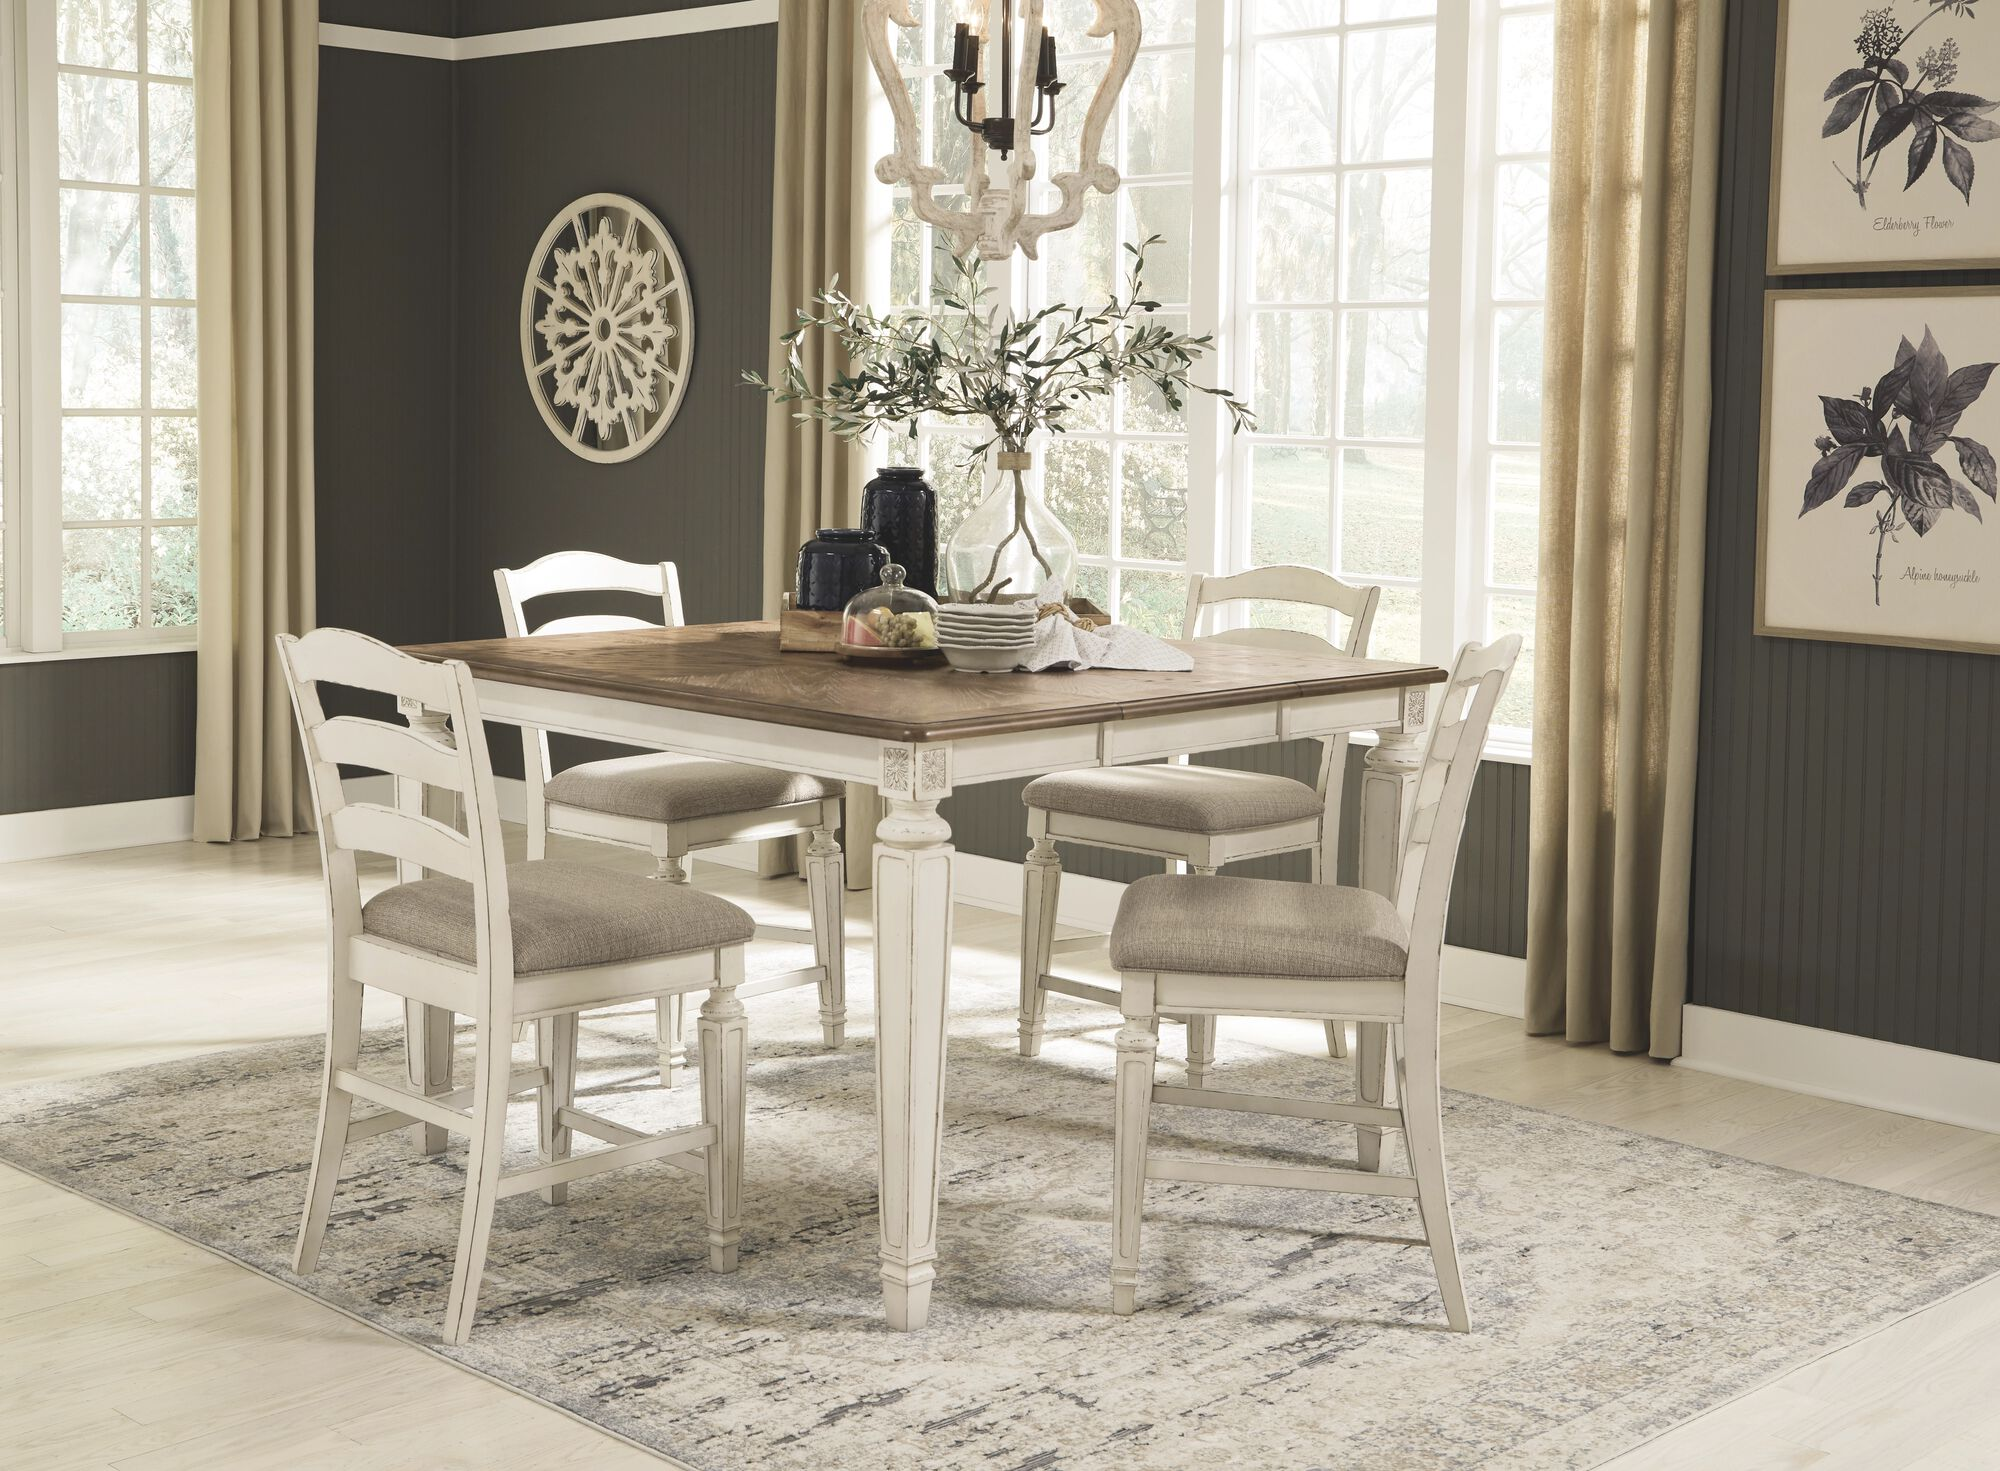 Realyn Two Tone 5 Pc Dining Room Counter Extension Table 4 Upholstered Bar Stools Mathis Brothers Furniture